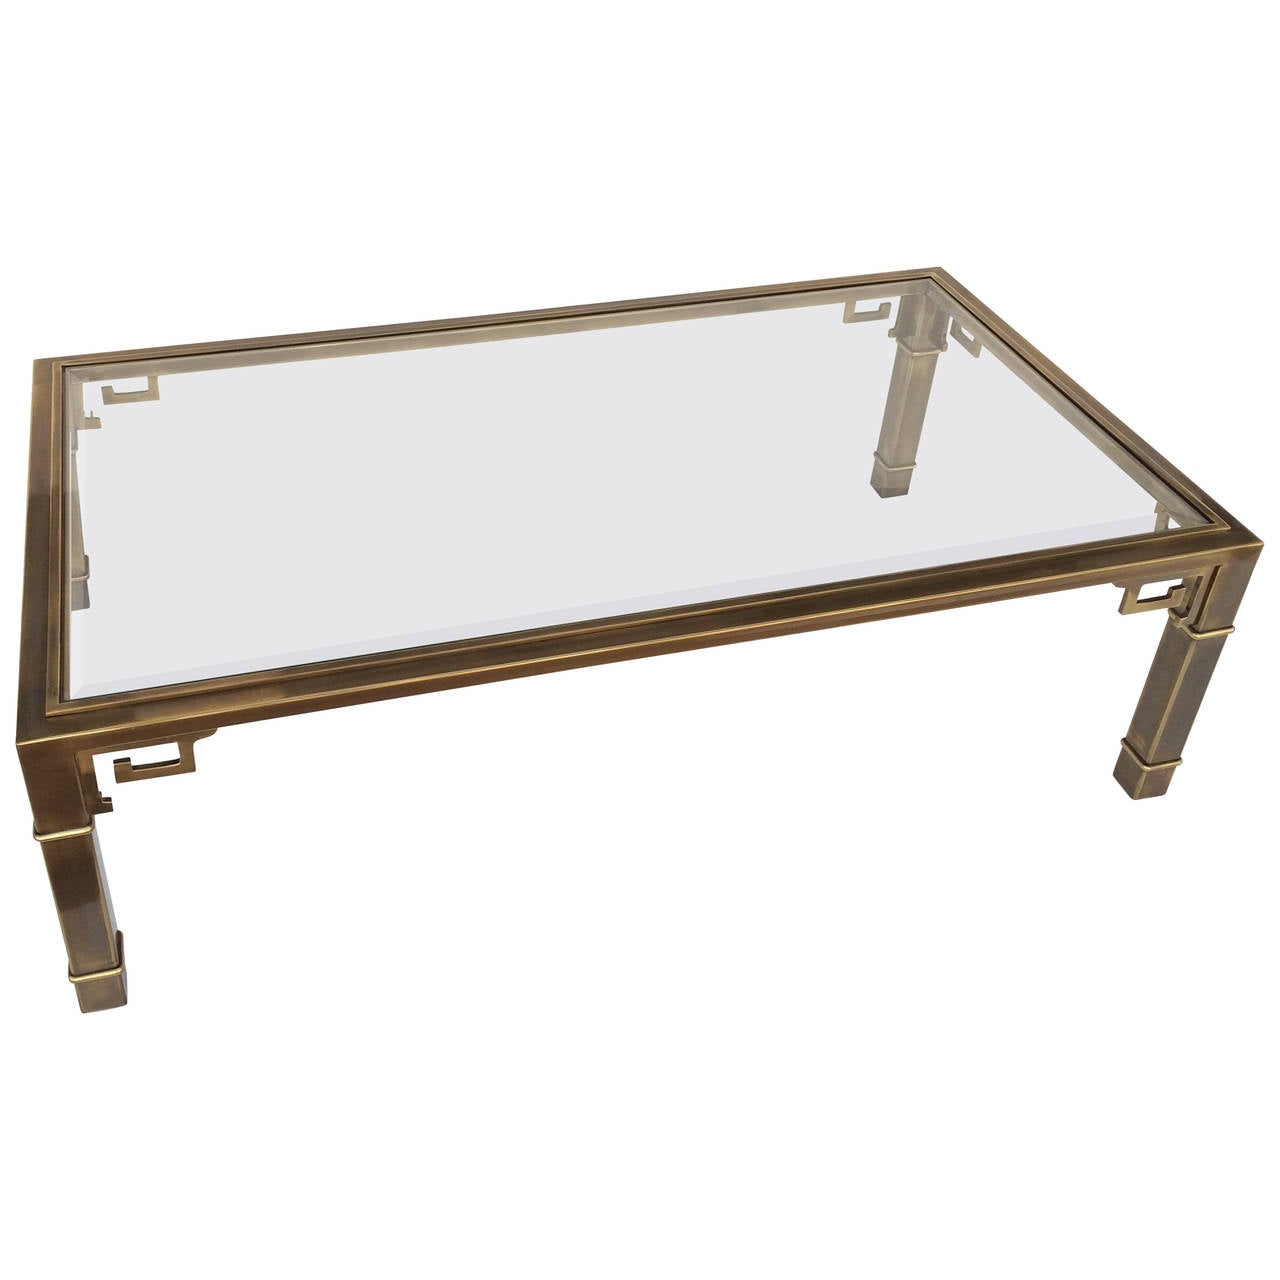 "Brass ""Greek Key"" Coffee Or Cocktail Table By Mastercraft"